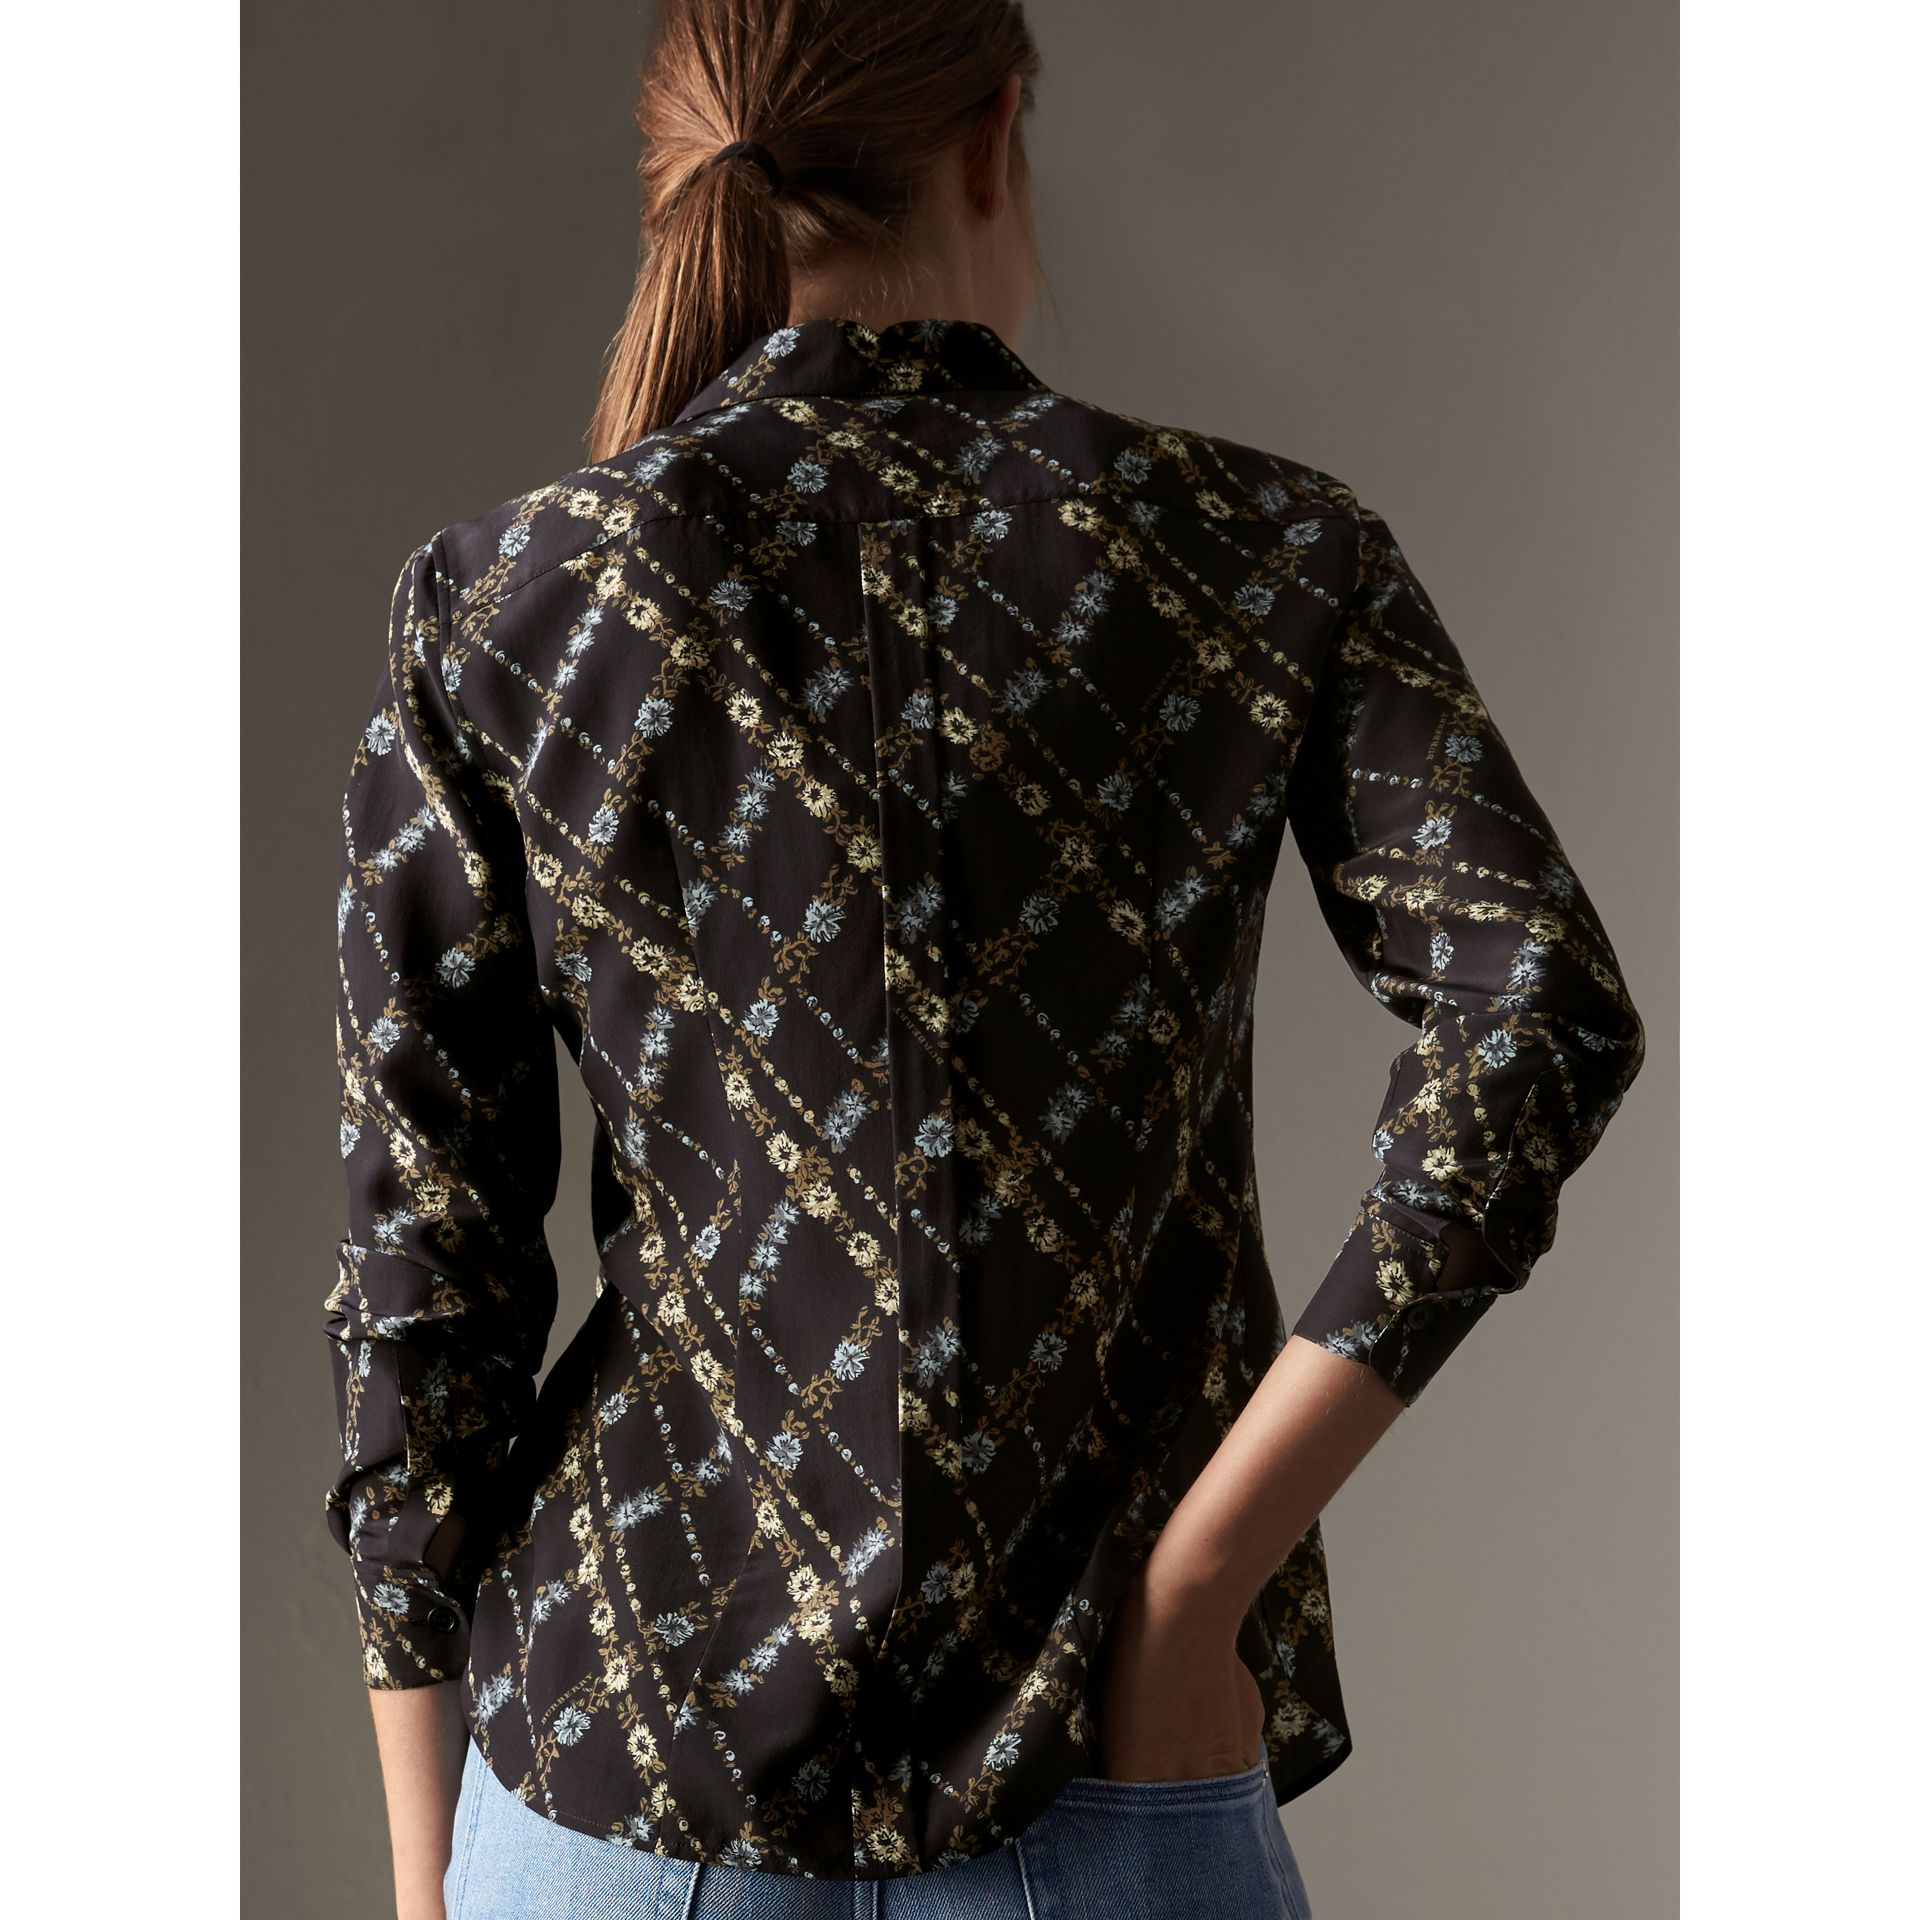 Lattice Floral Print Silk Shirt in Black - Women | Burberry Singapore - gallery image 3